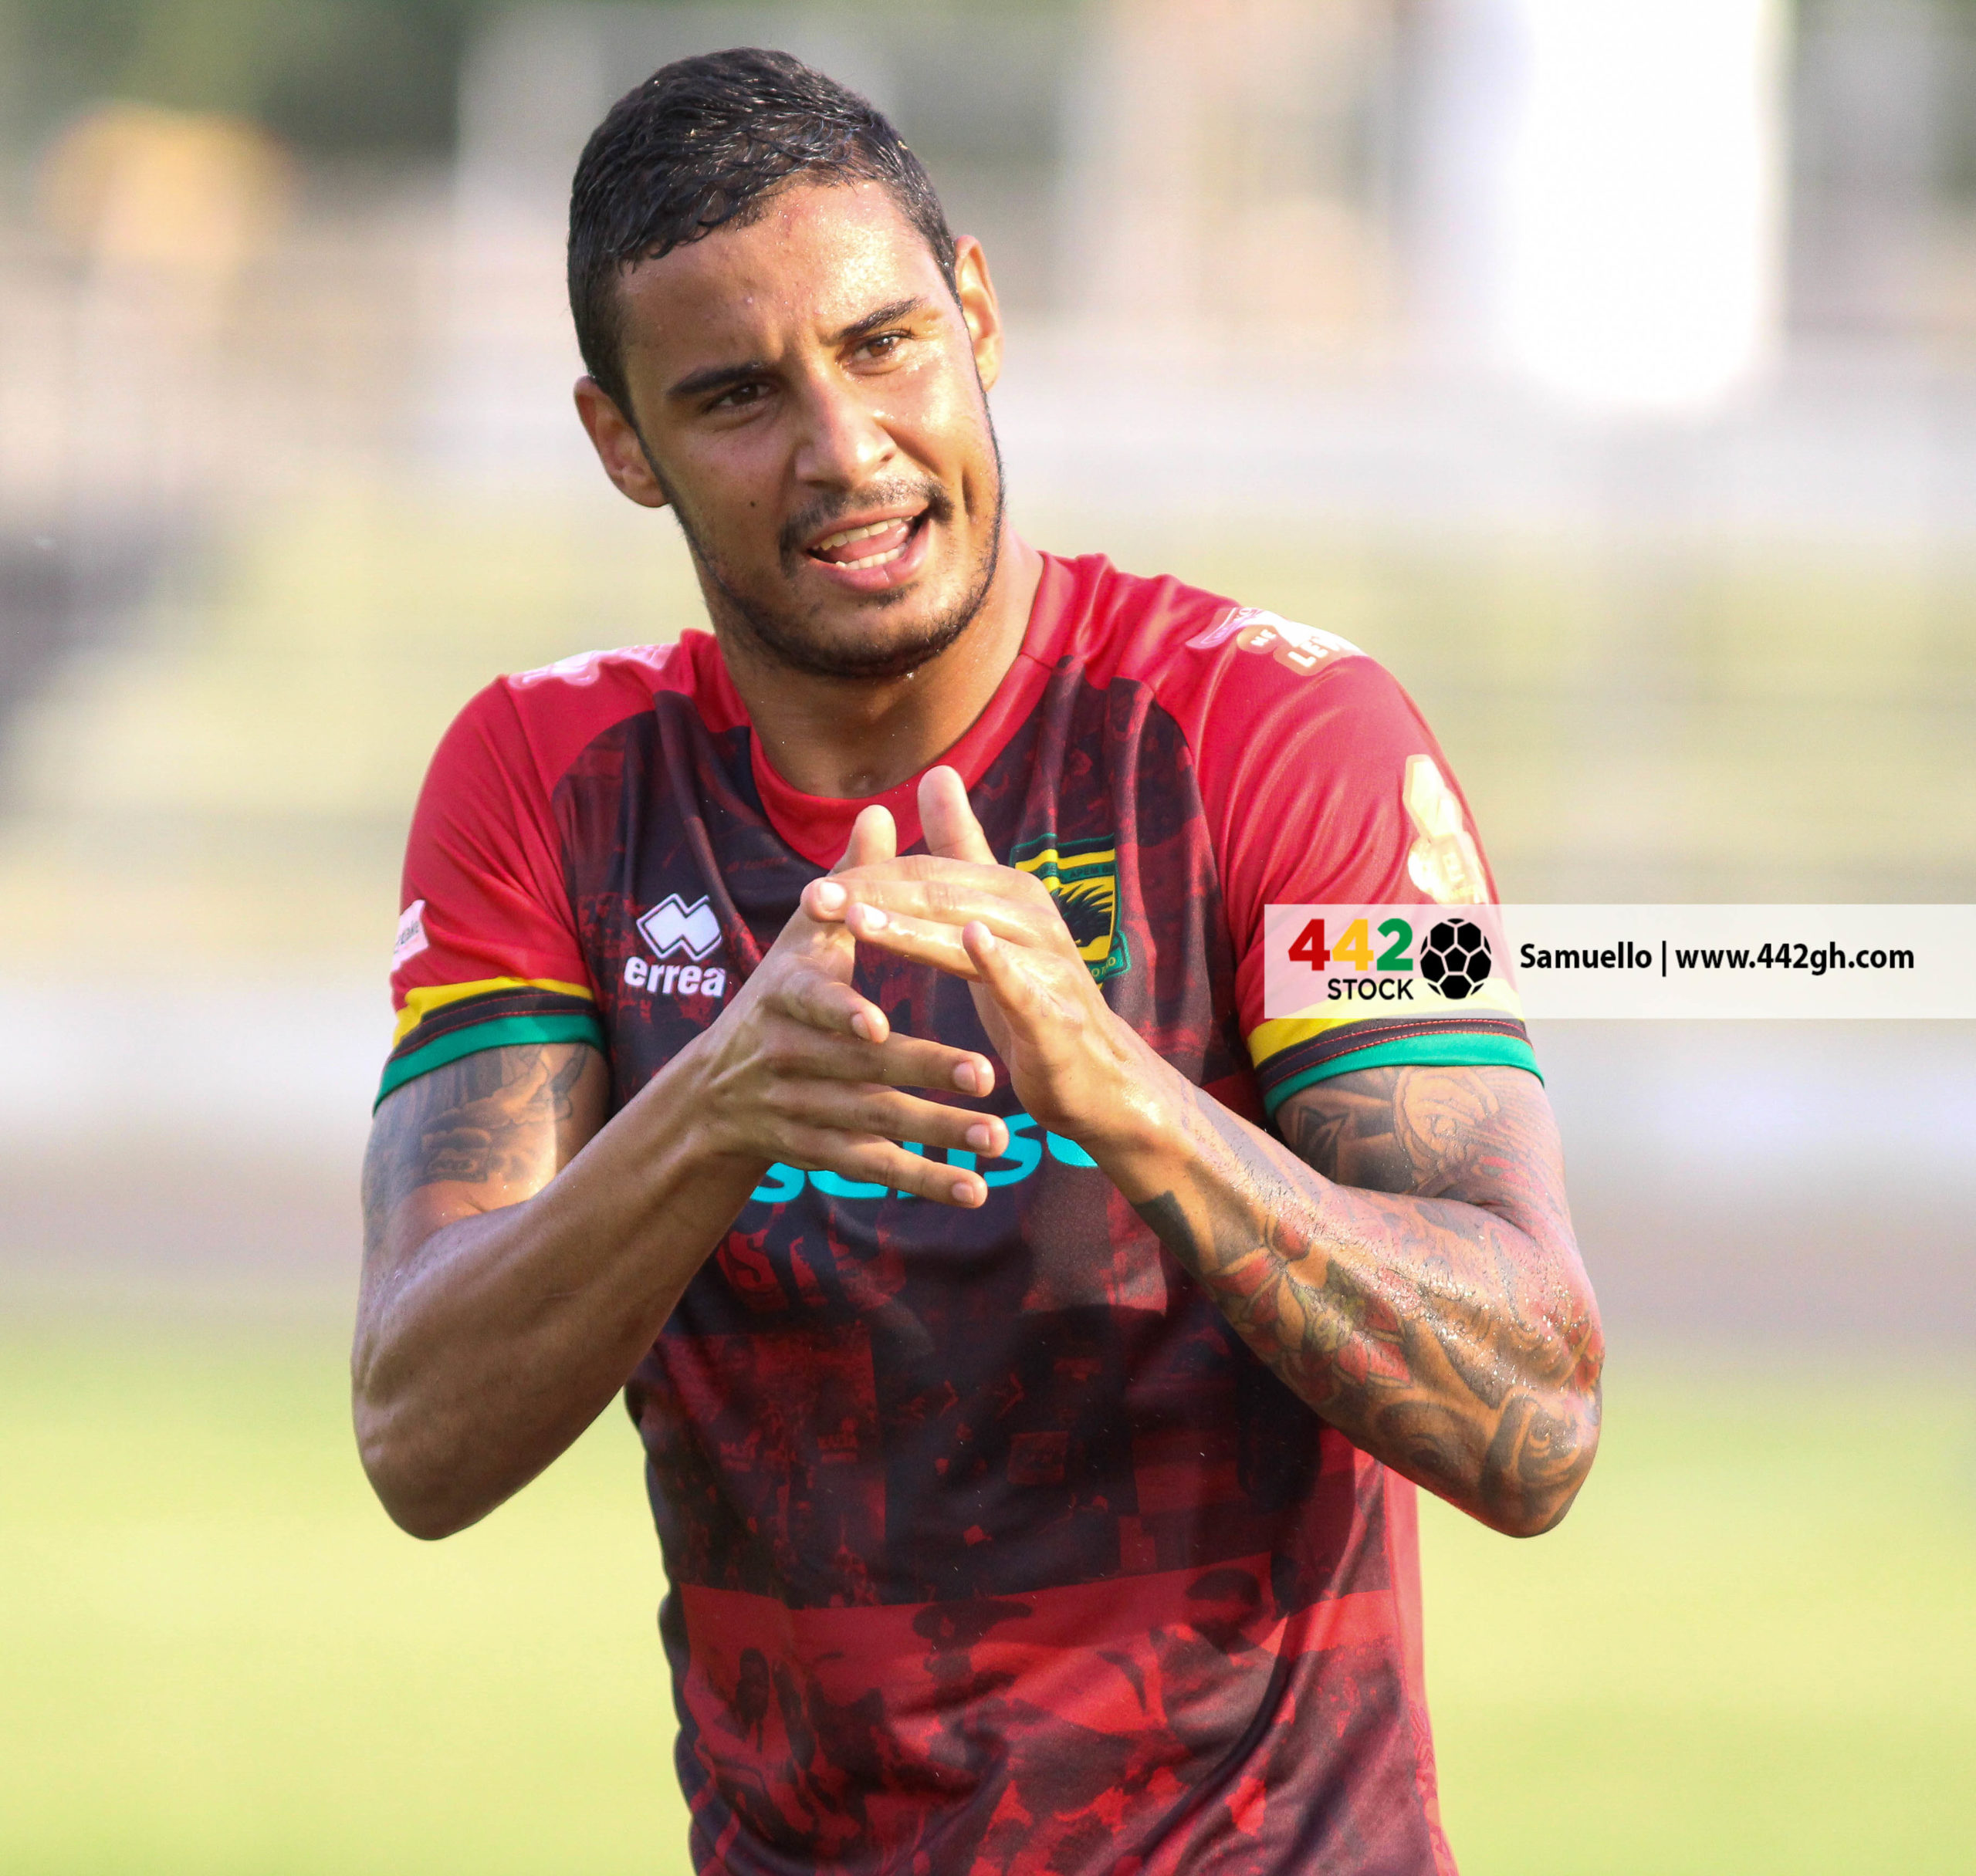 IMG 7492 1 scaled - PICTURE SPECIAL: Michael Vinicius' First Appearance In A Kotoko Shirt Against Bechem United